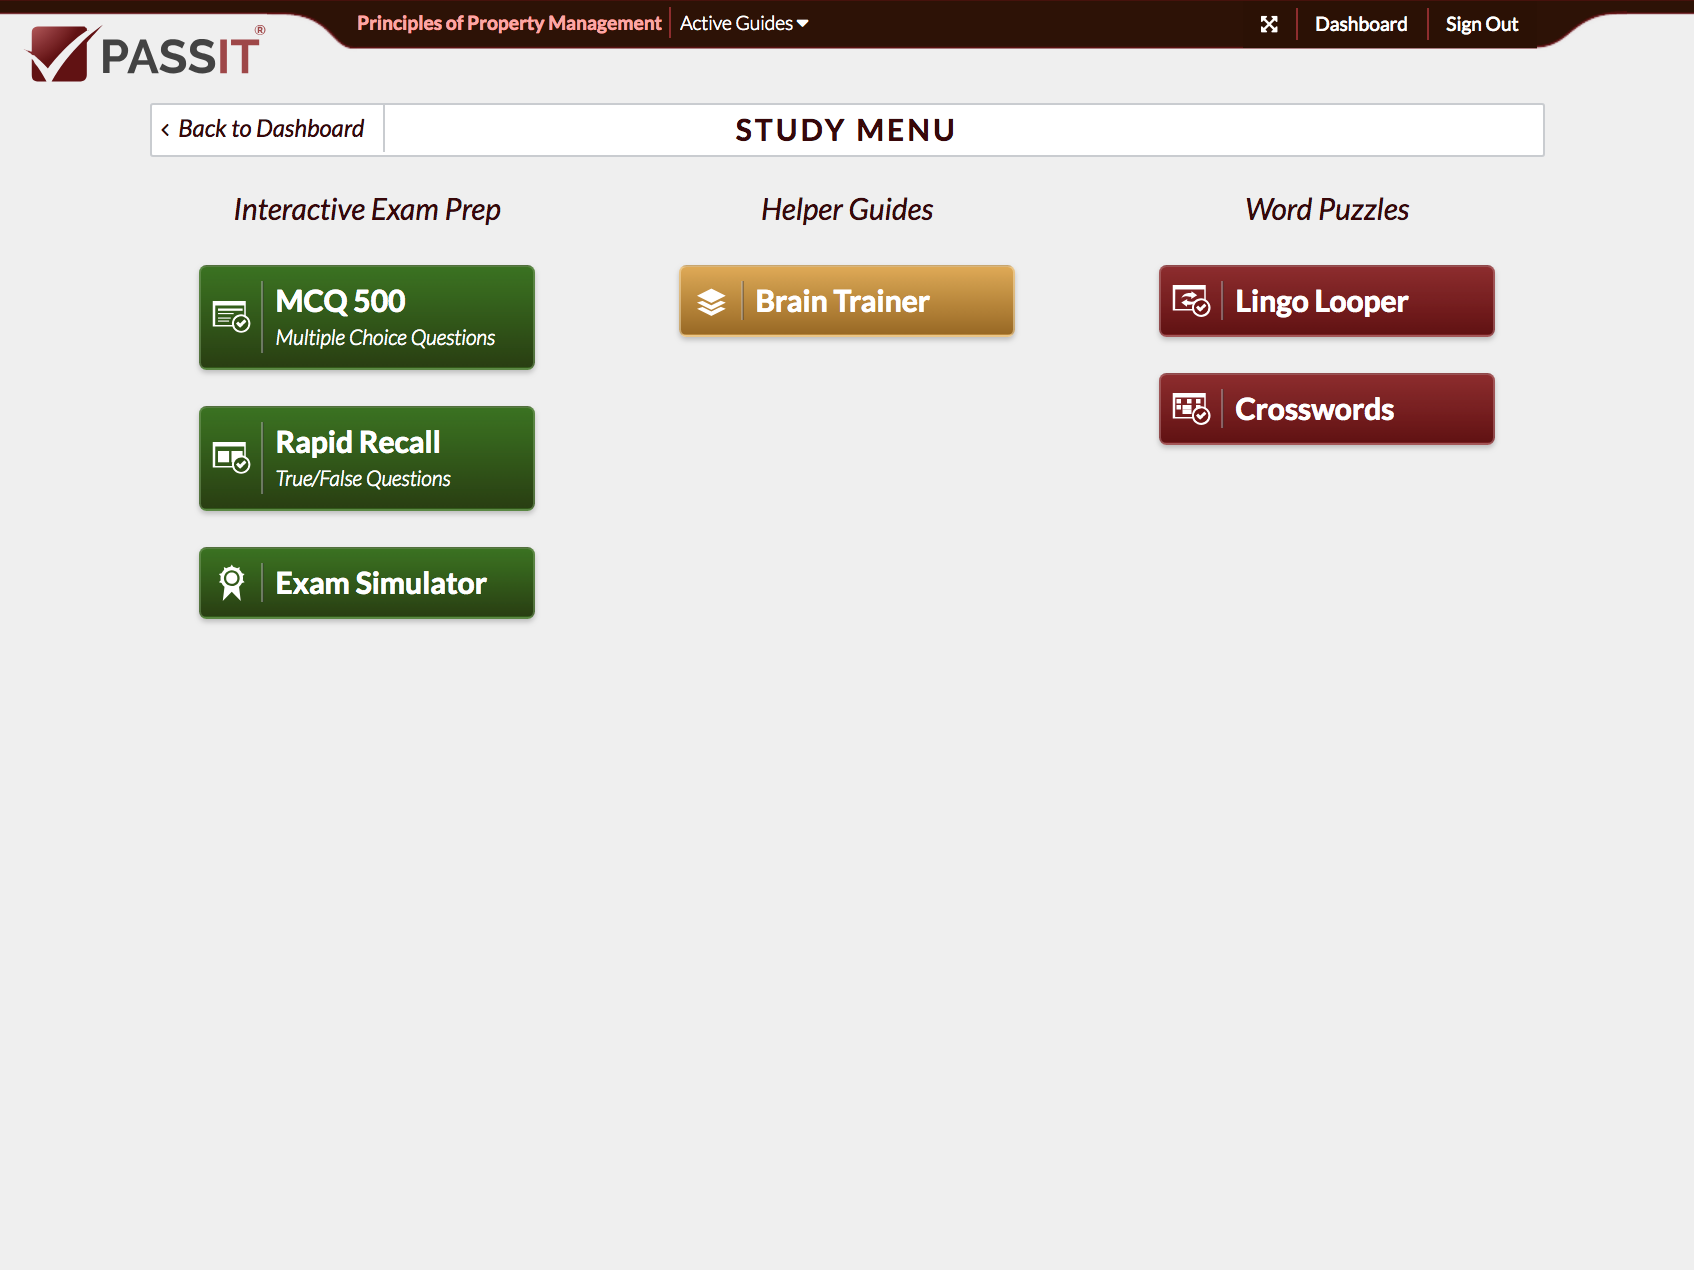 Passit's Principles of Property Management Main Menu